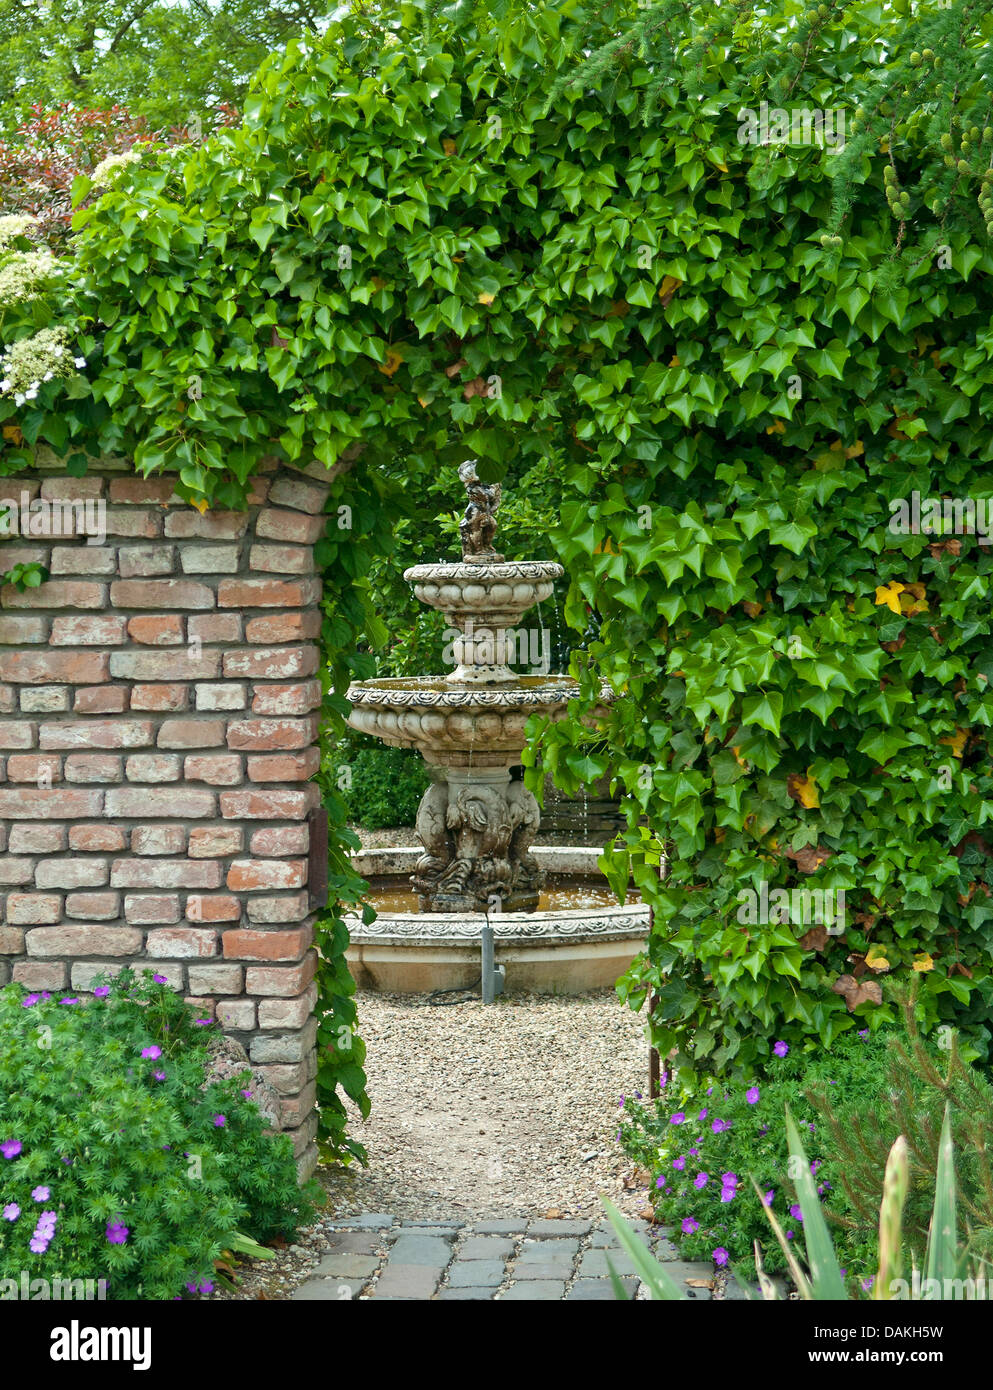 English ivy, common ivy (Hedera helix), ivy-covered garten gate, Netherlands Stock Photo